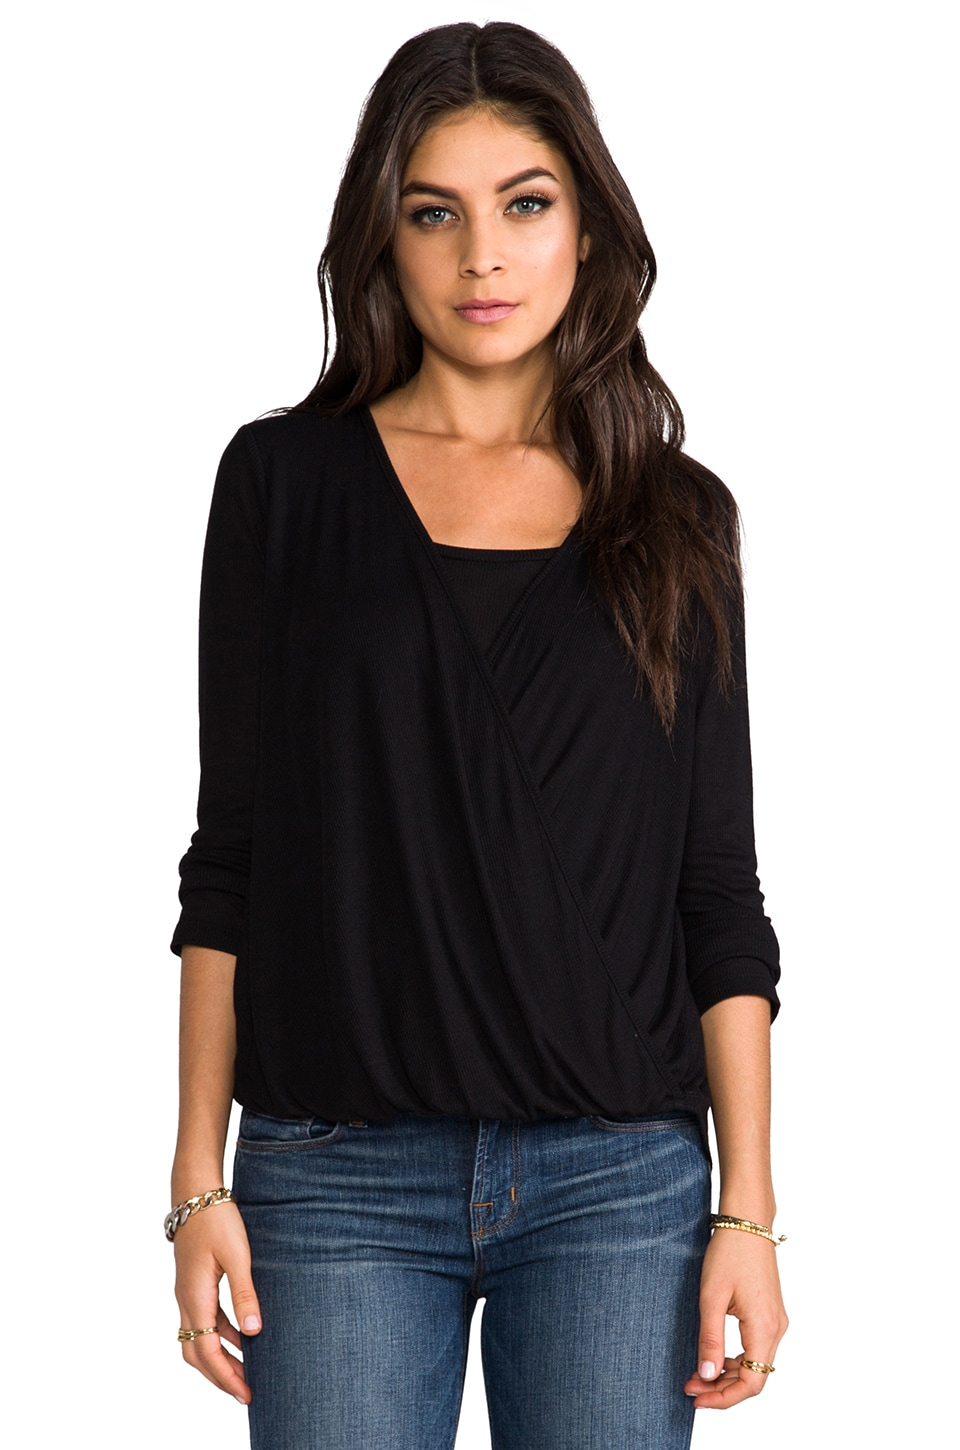 Splendid Drapey Rib Top in Black